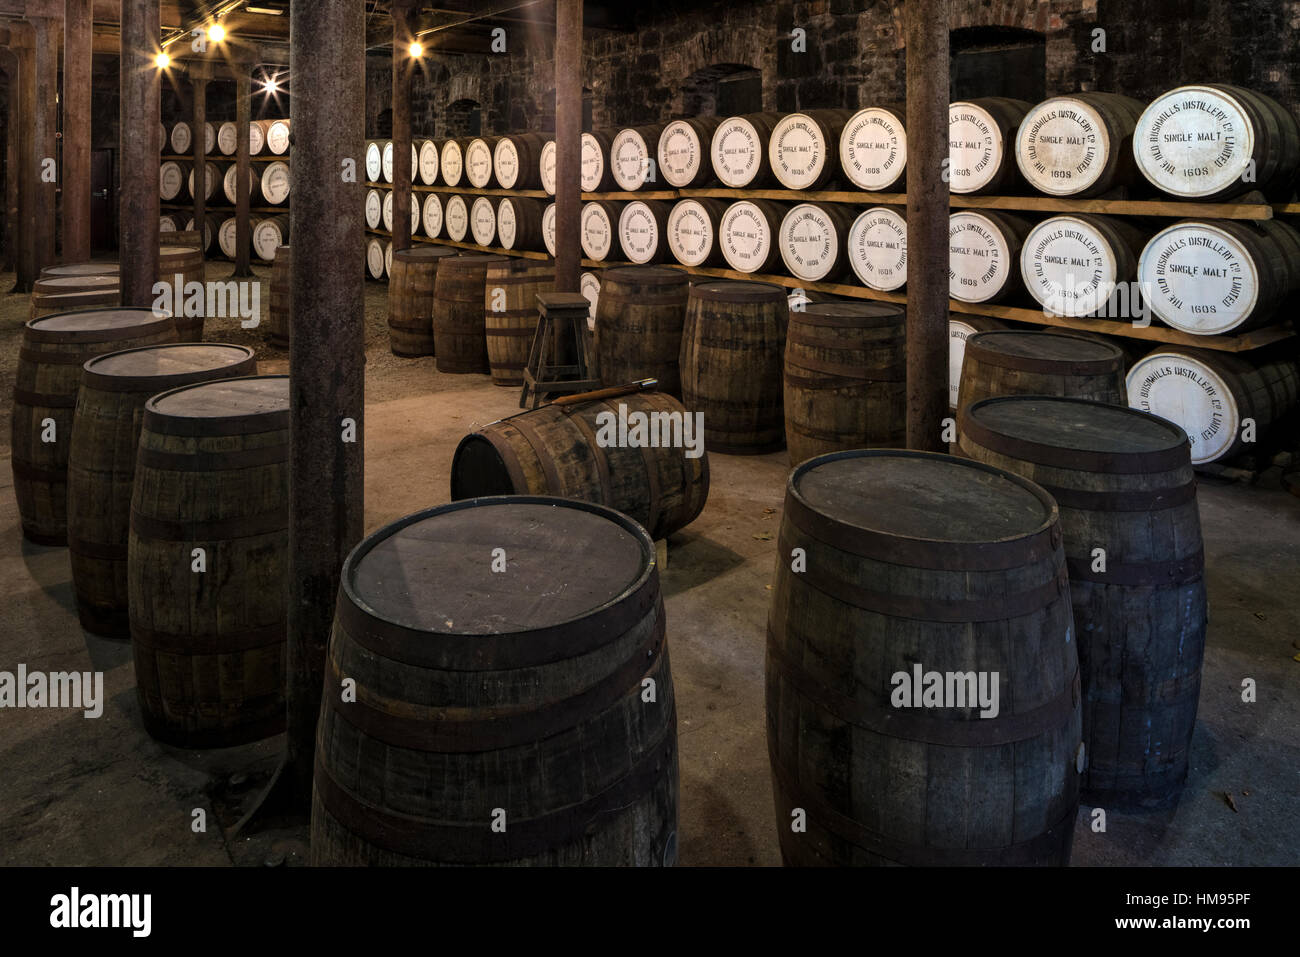 Bushmills Distillery, County Antrim, Ulster, Northern Ireland, United Kingdom - Stock Image